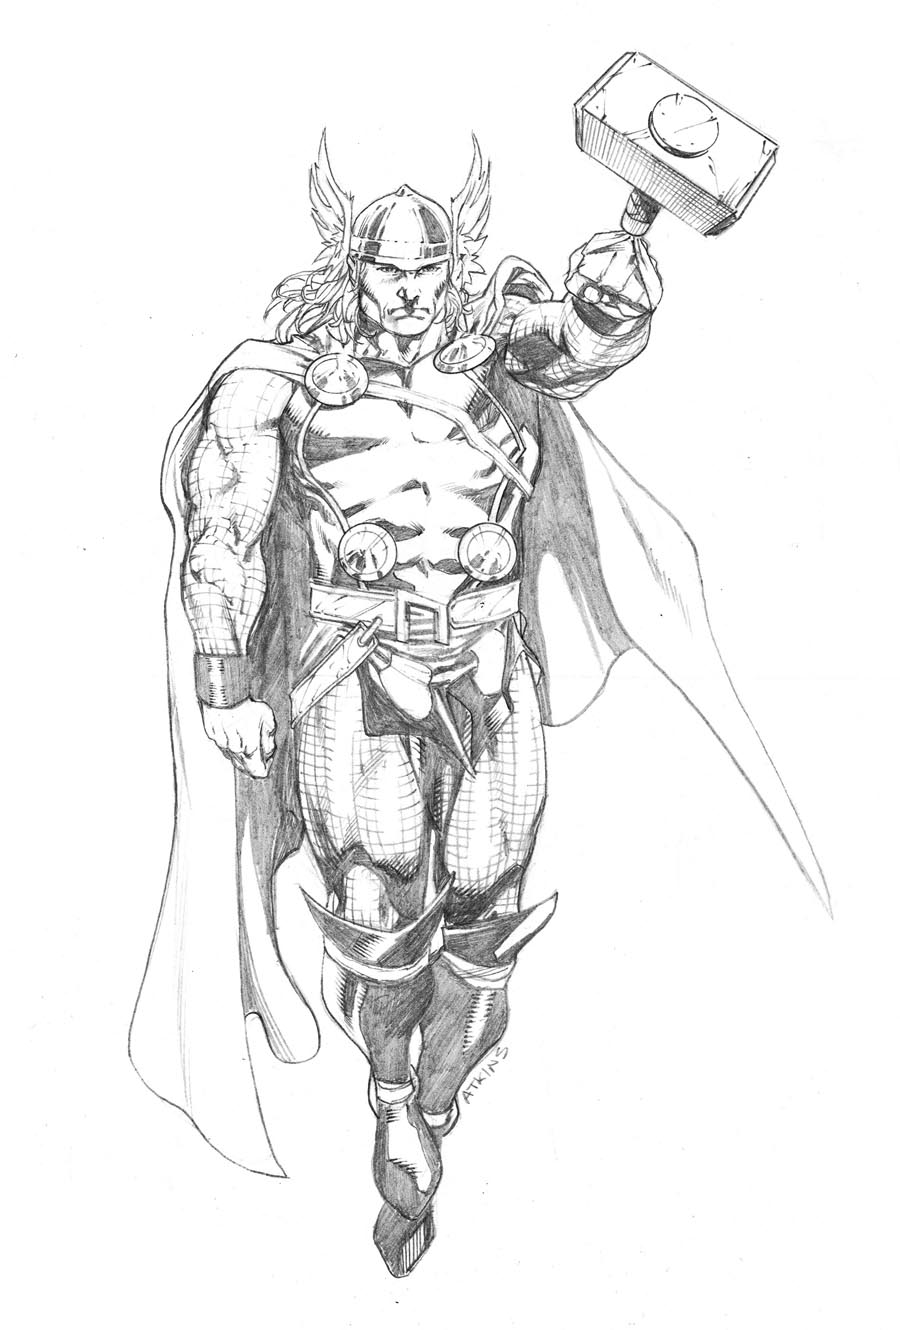 Drawn thor Atkins Thor Avengers Robert April